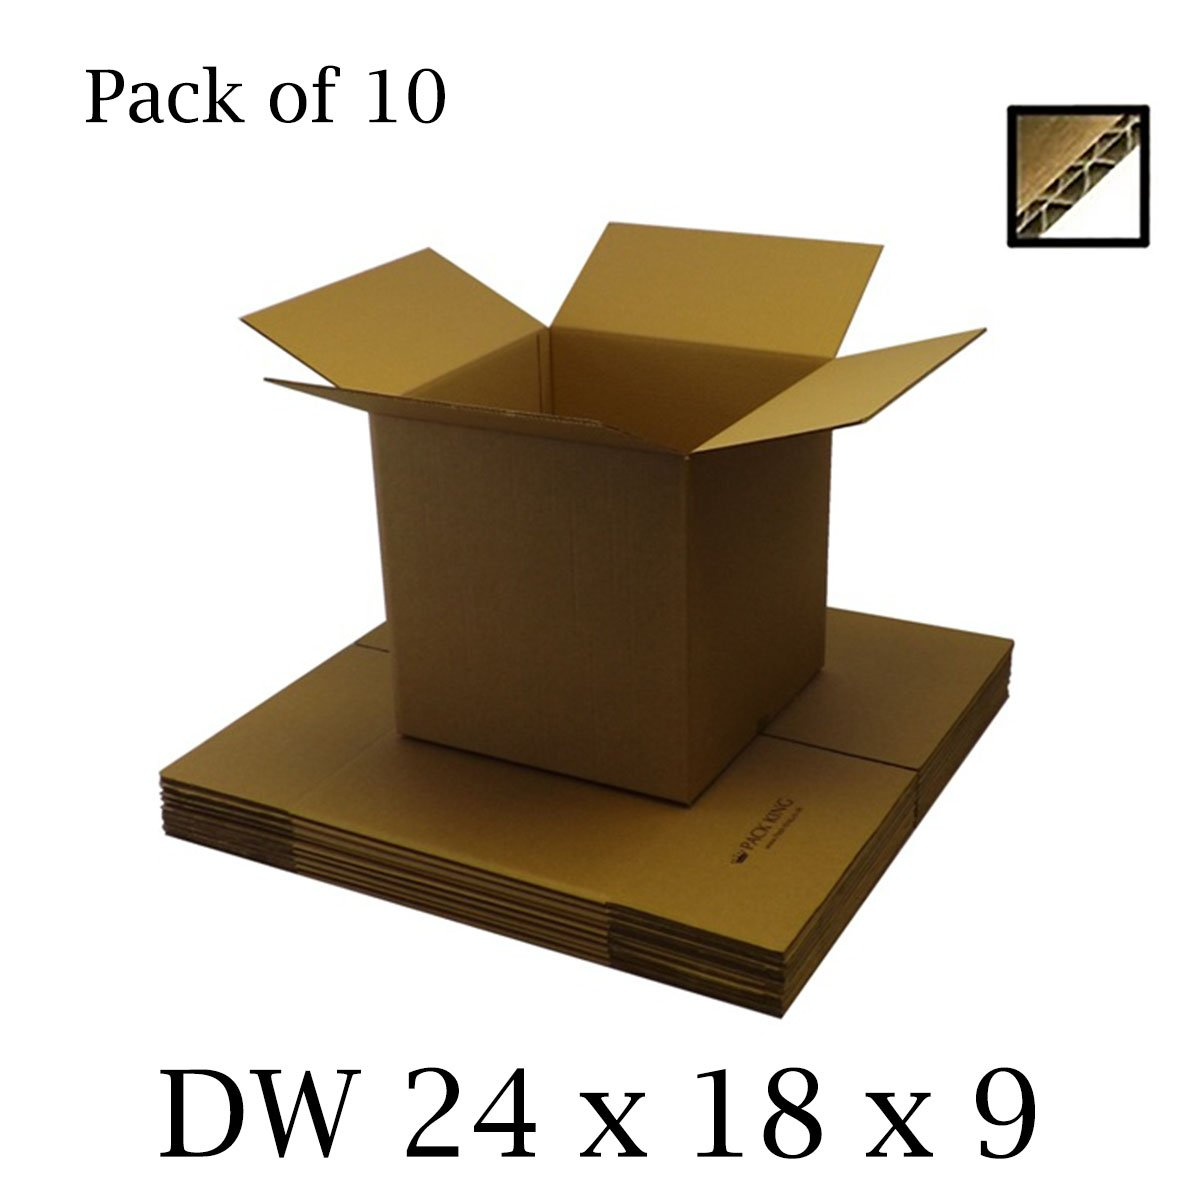 10 x Double Wall Brown Cardboard Boxes Packaging Postal, Mailing & Storage Strong Containers Flat Packed Corrugated Cartons House Moving / Removals – All Sizes Available (12